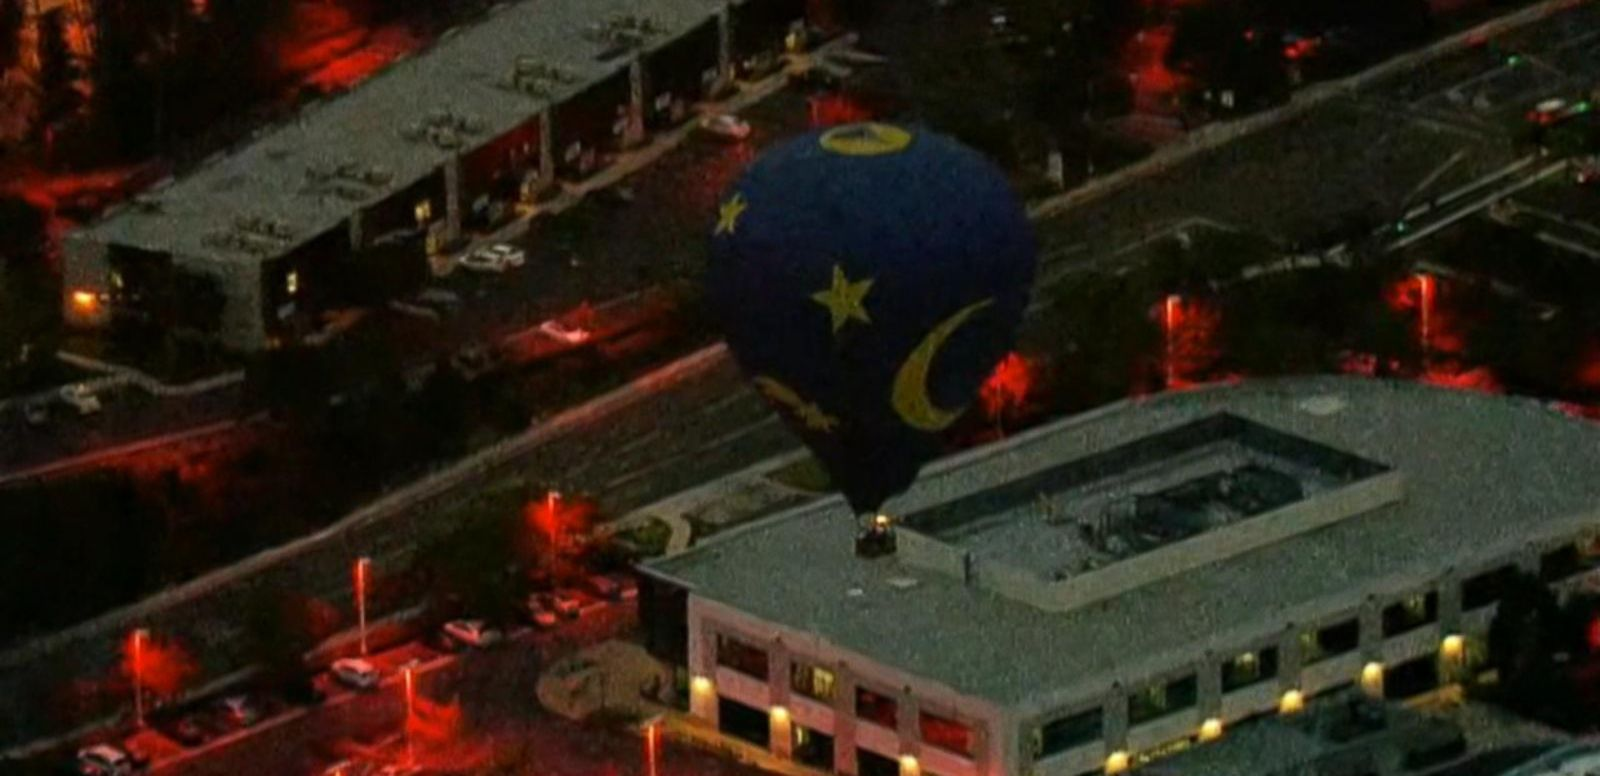 VIDEO: Hot Air Balloon Wedding Makes Emergency Landing